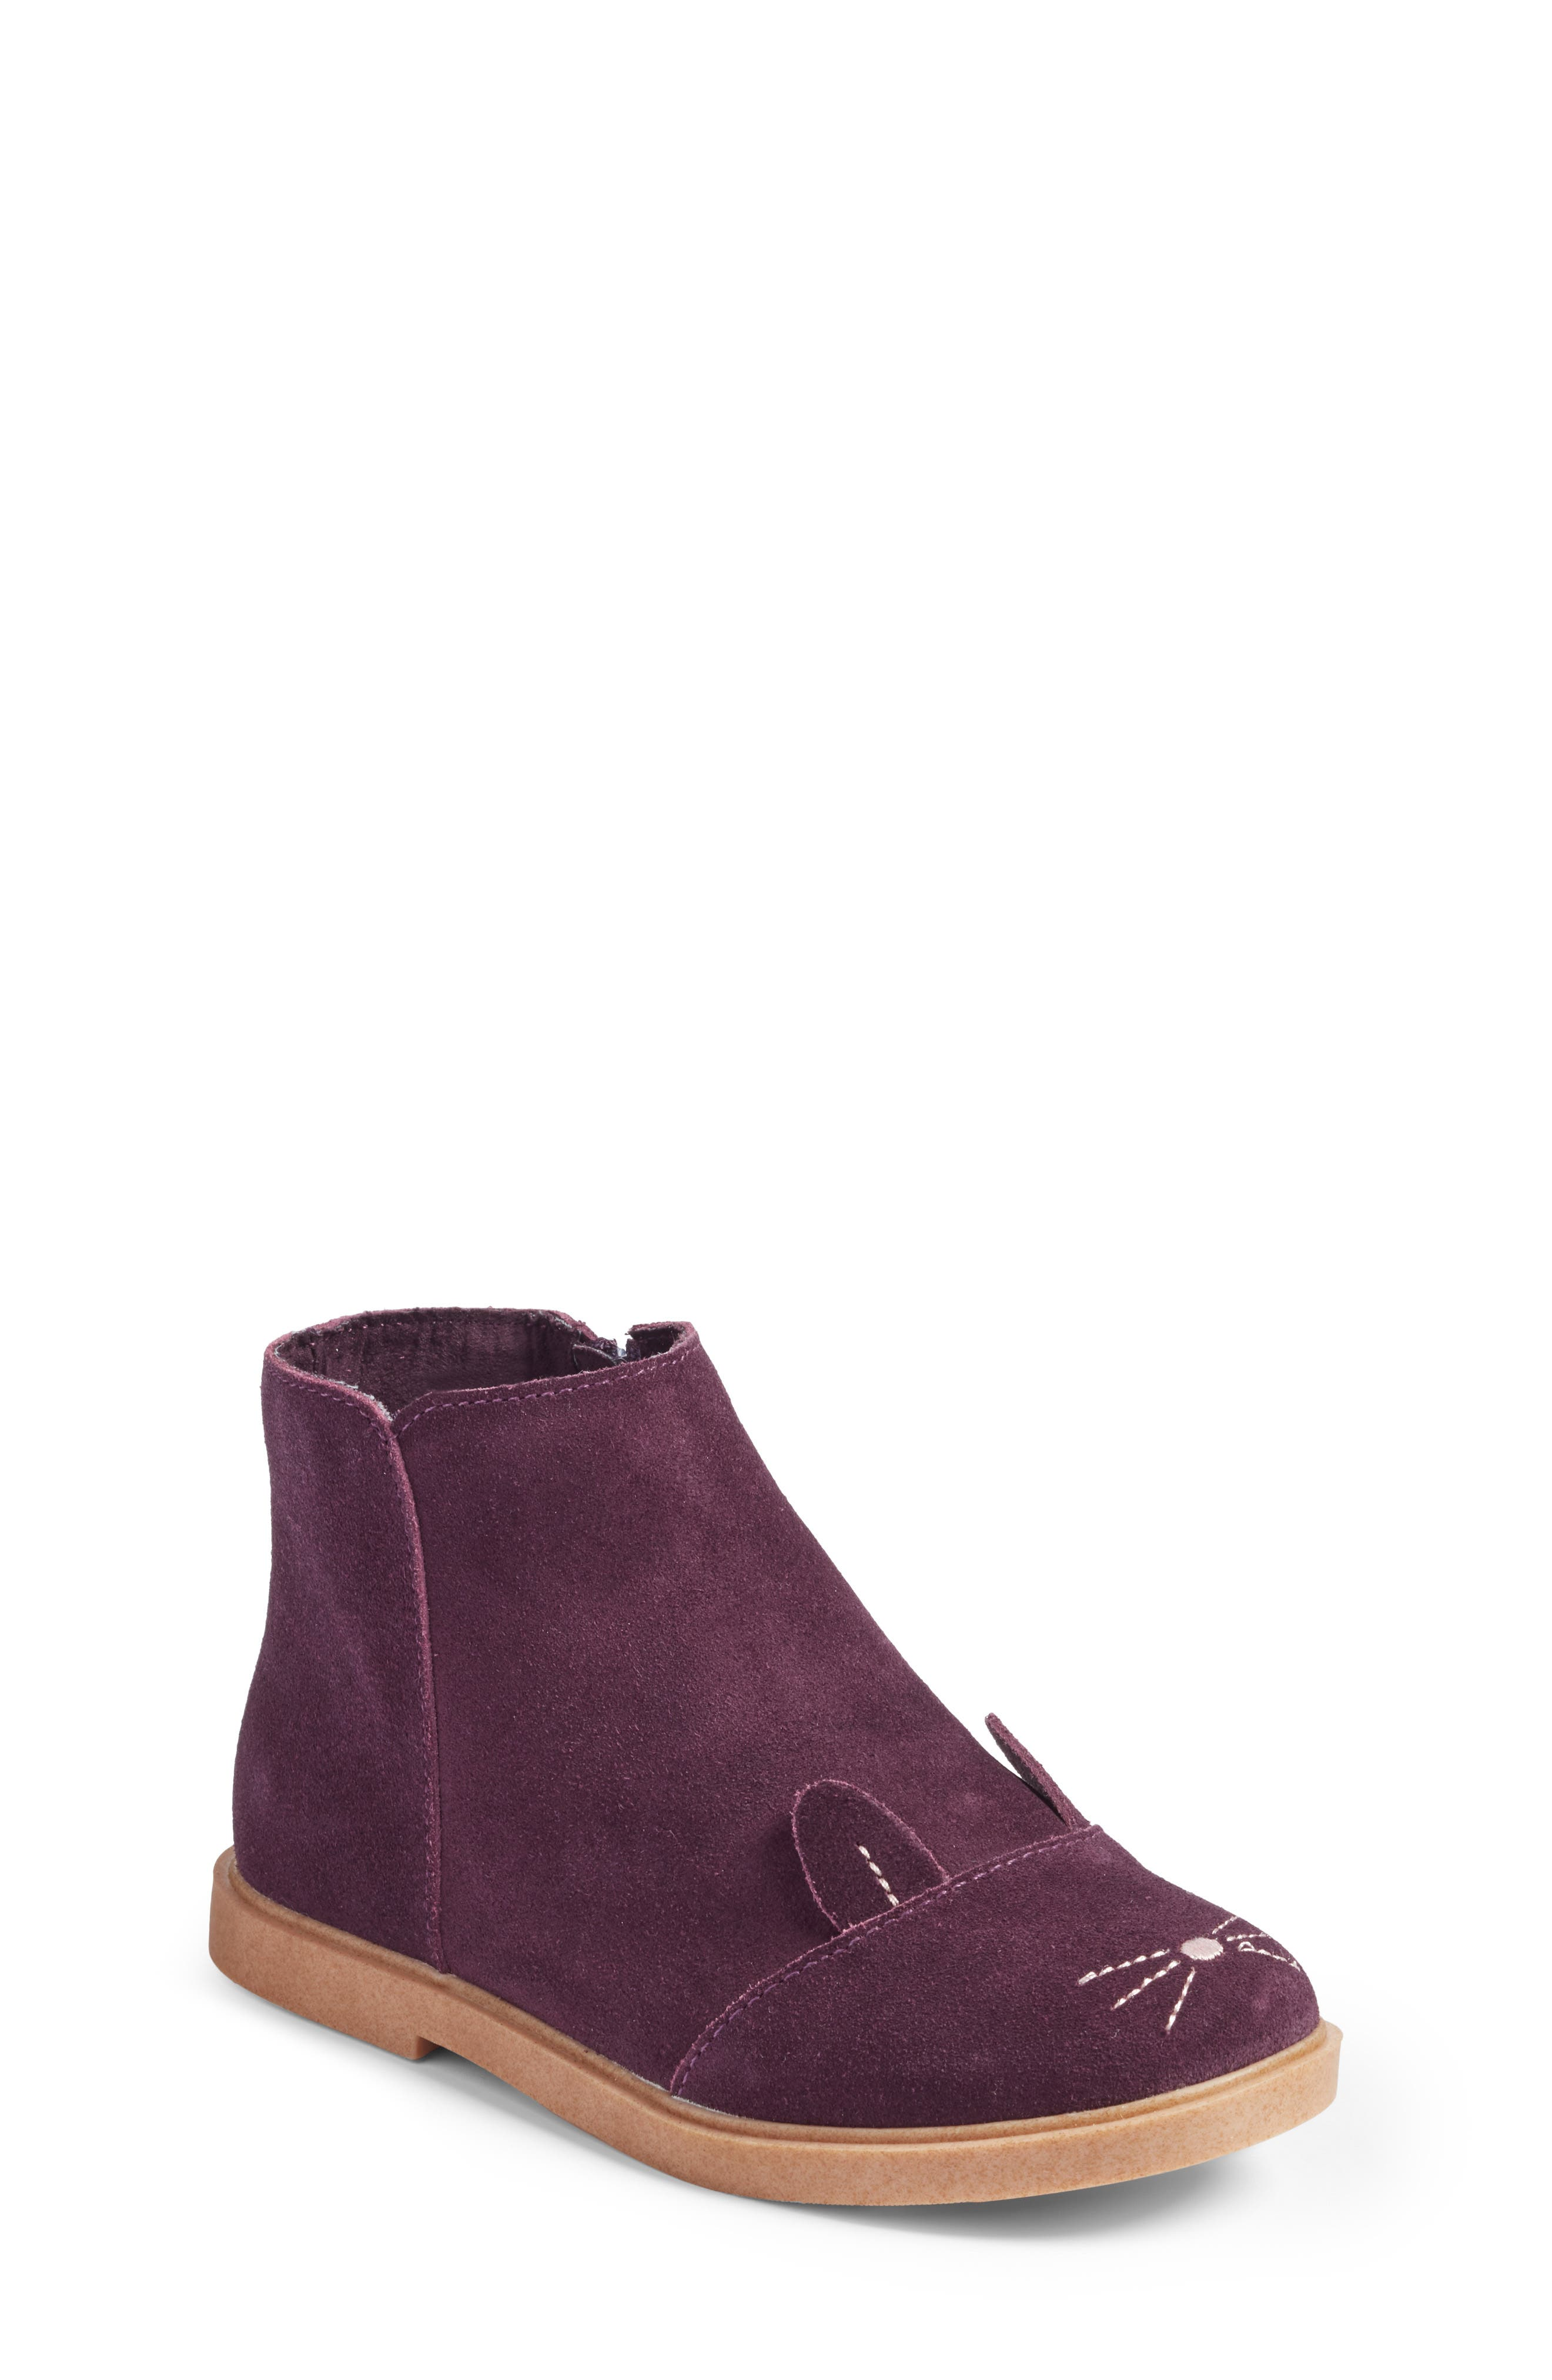 Bunny Boot,                             Main thumbnail 1, color,                             Berry Leather